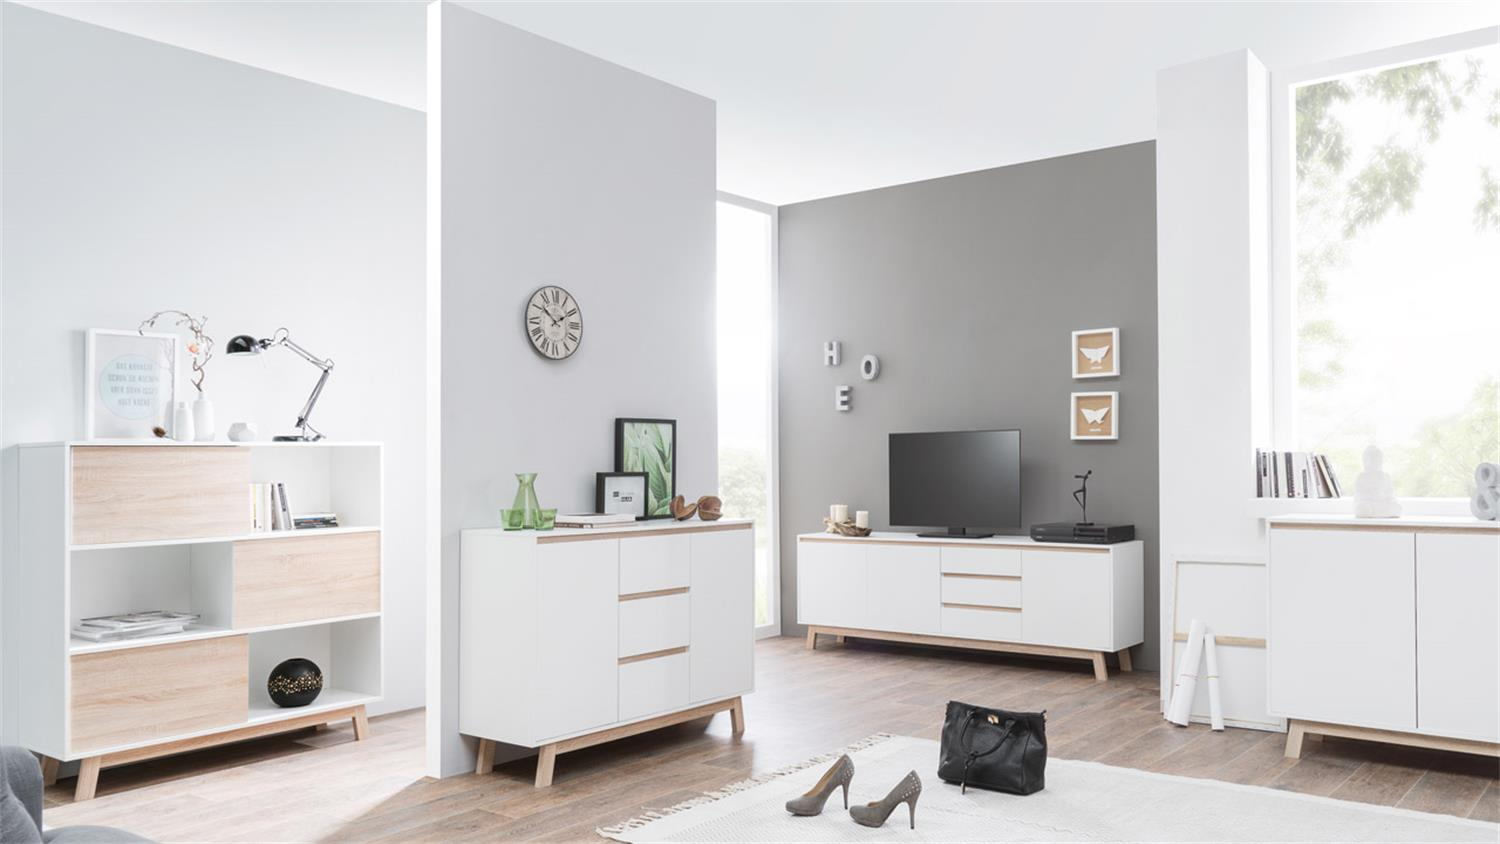 regal apart 5 kommode sideboard schrank wei und sonoma eiche 120 cm. Black Bedroom Furniture Sets. Home Design Ideas